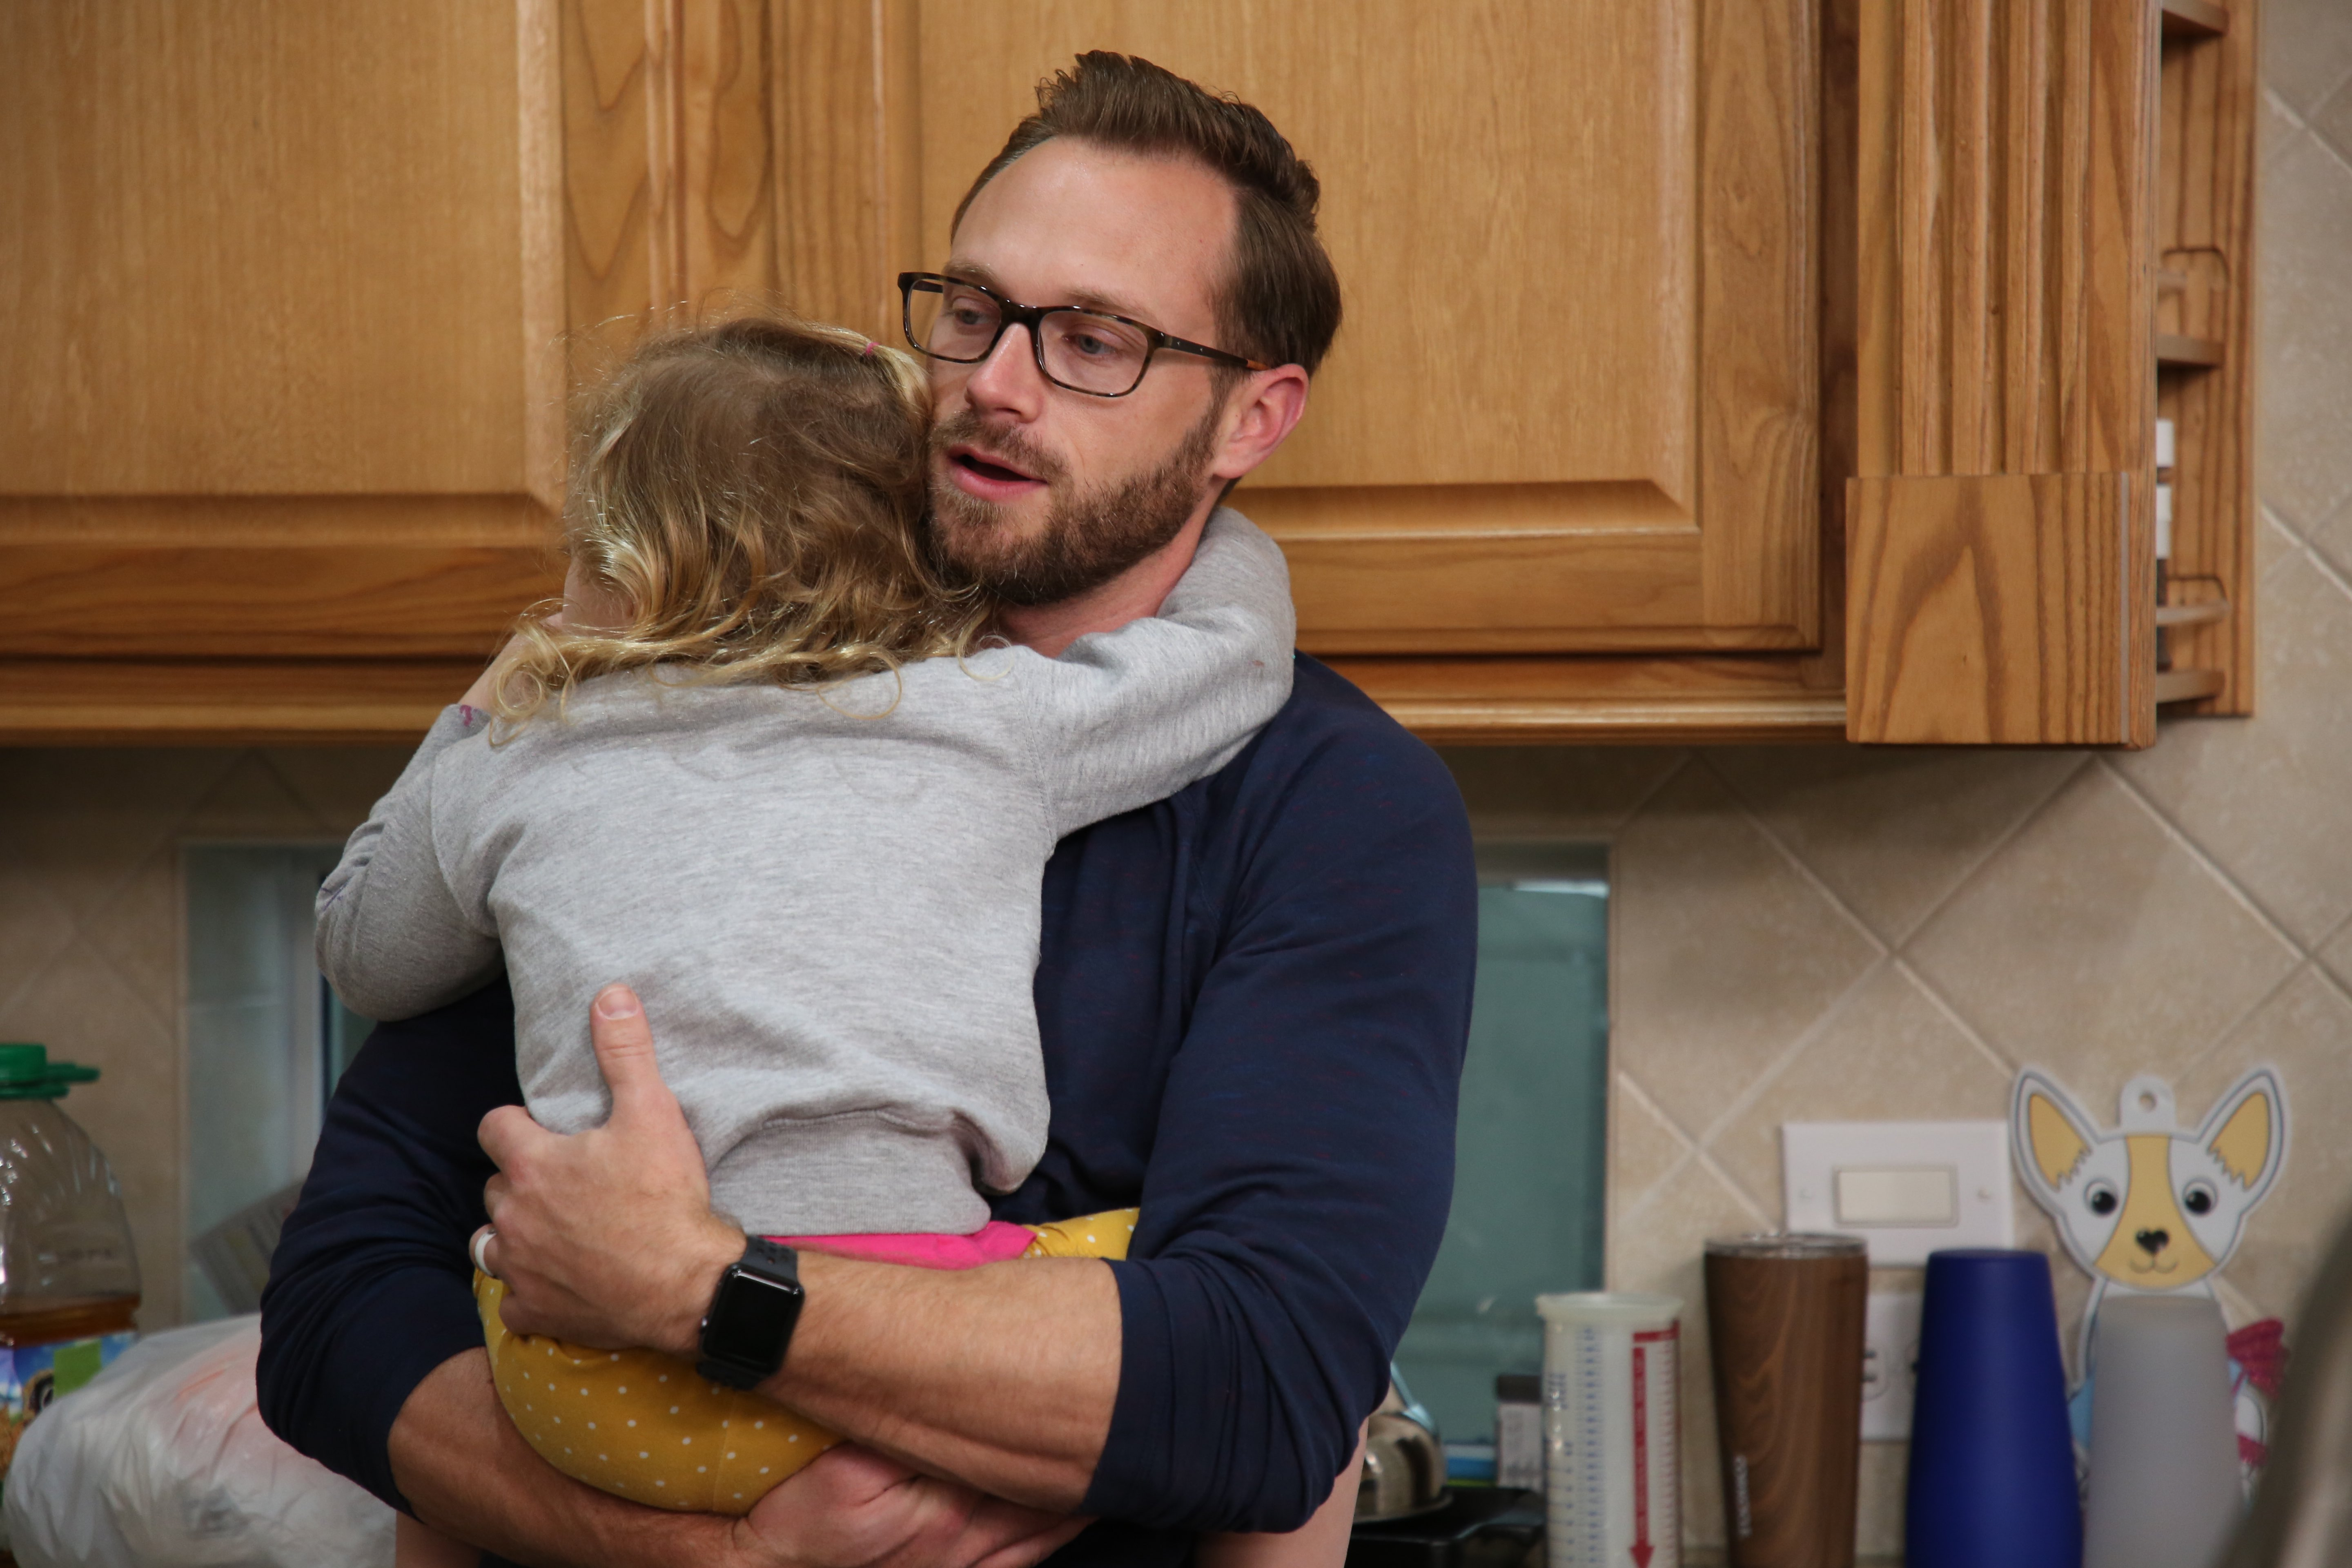 OutDaughtered': Does Adam Busby Have a Job? Here's What He